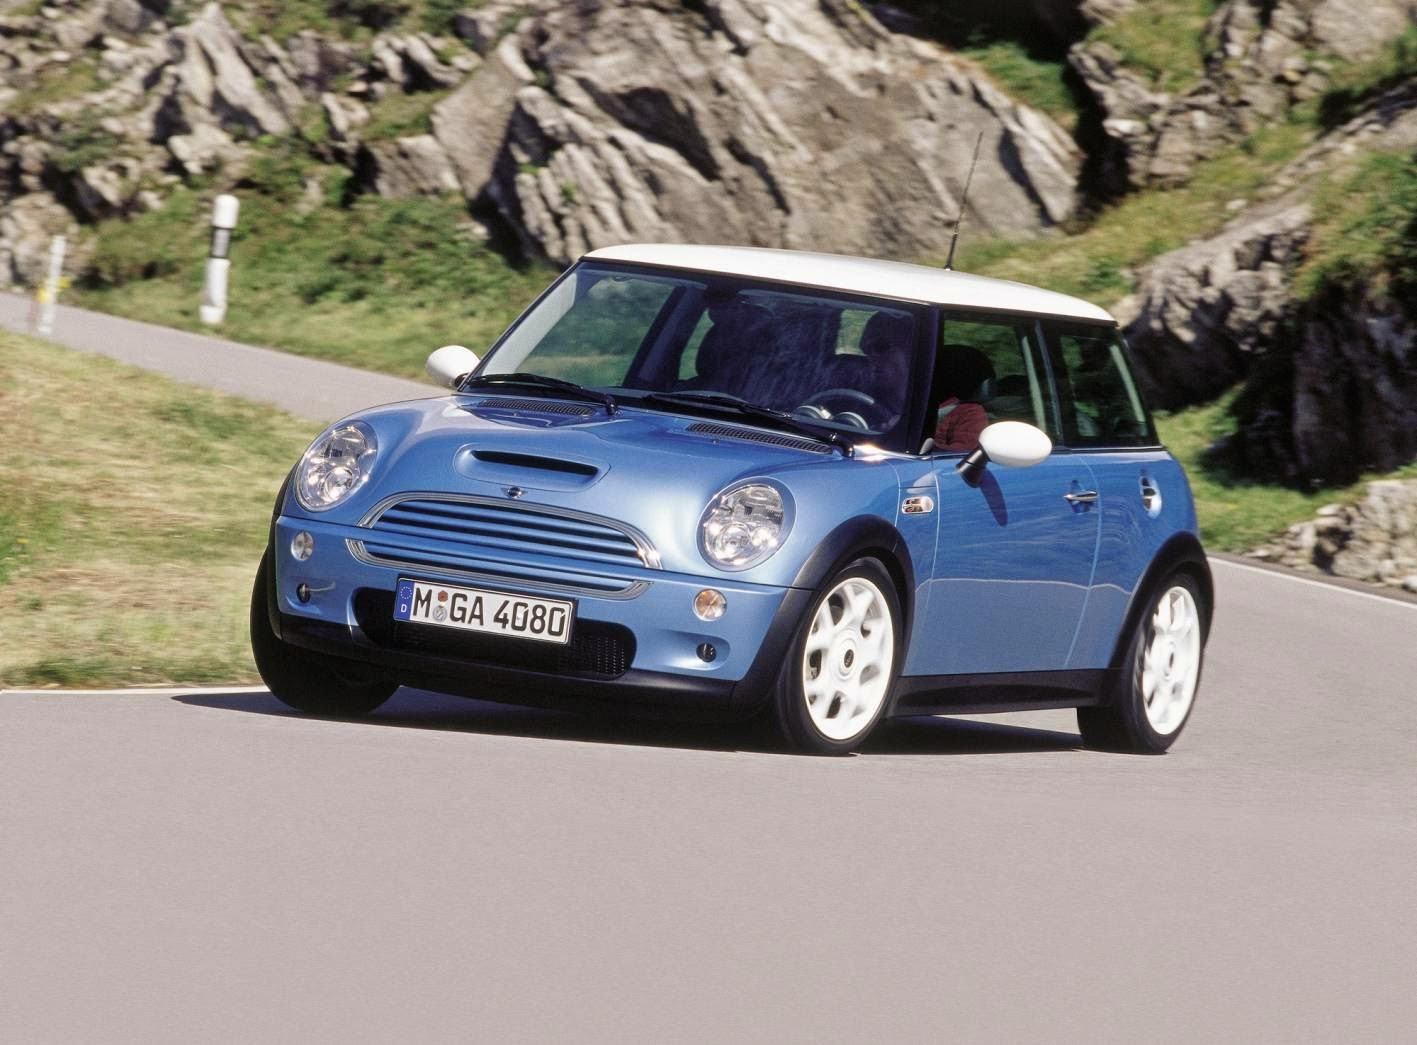 A Mini Cooper S in its natural habitat, a twisting mountain road